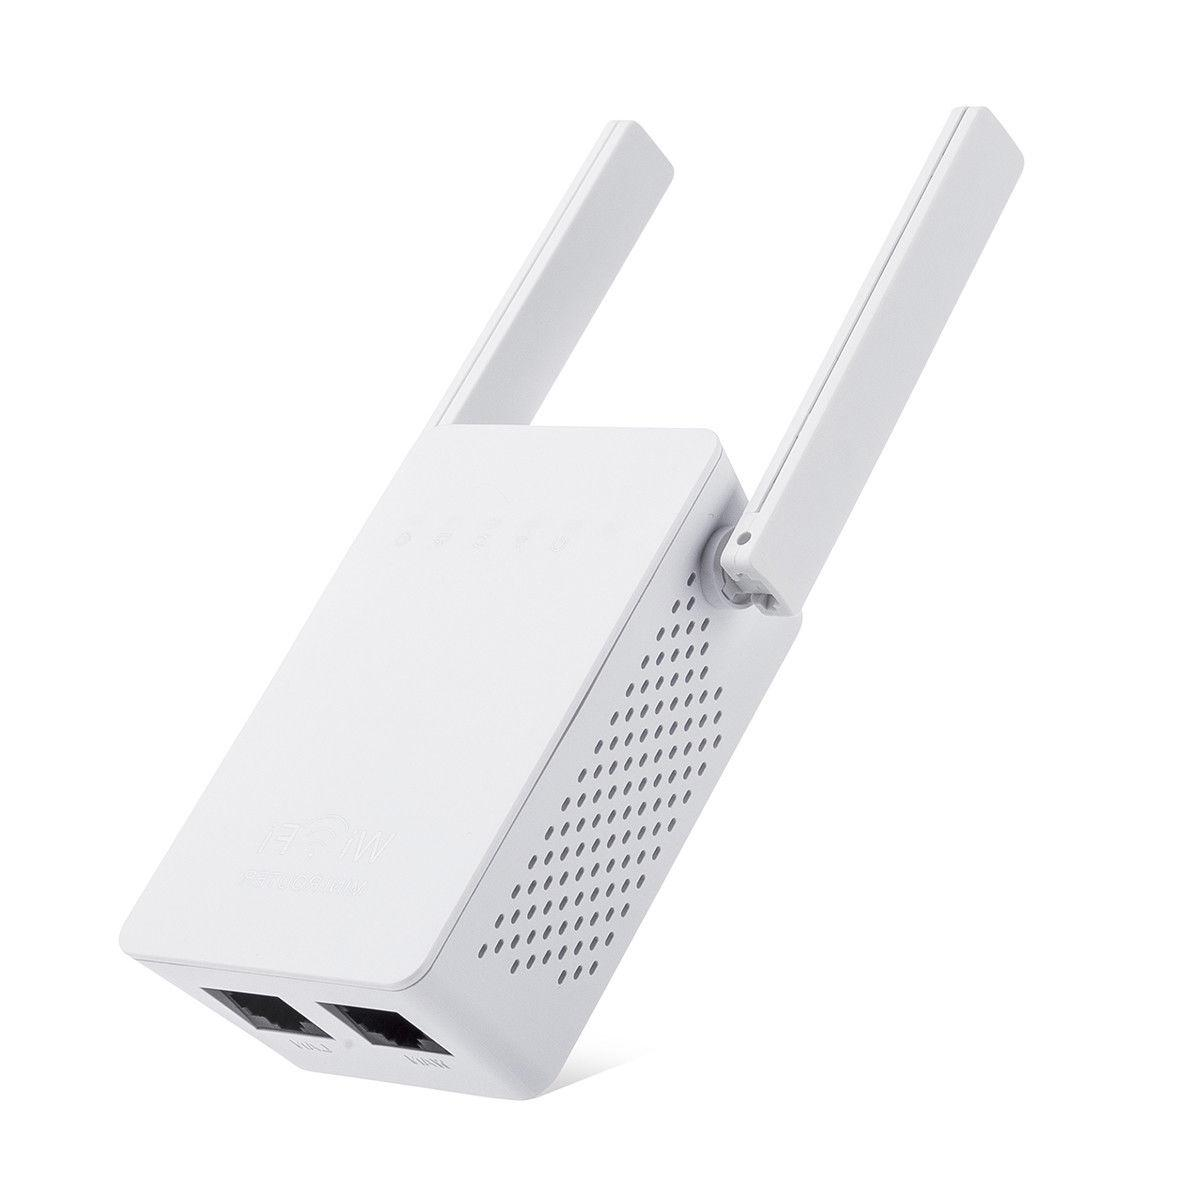 300Mbps WiFi Repeater Network